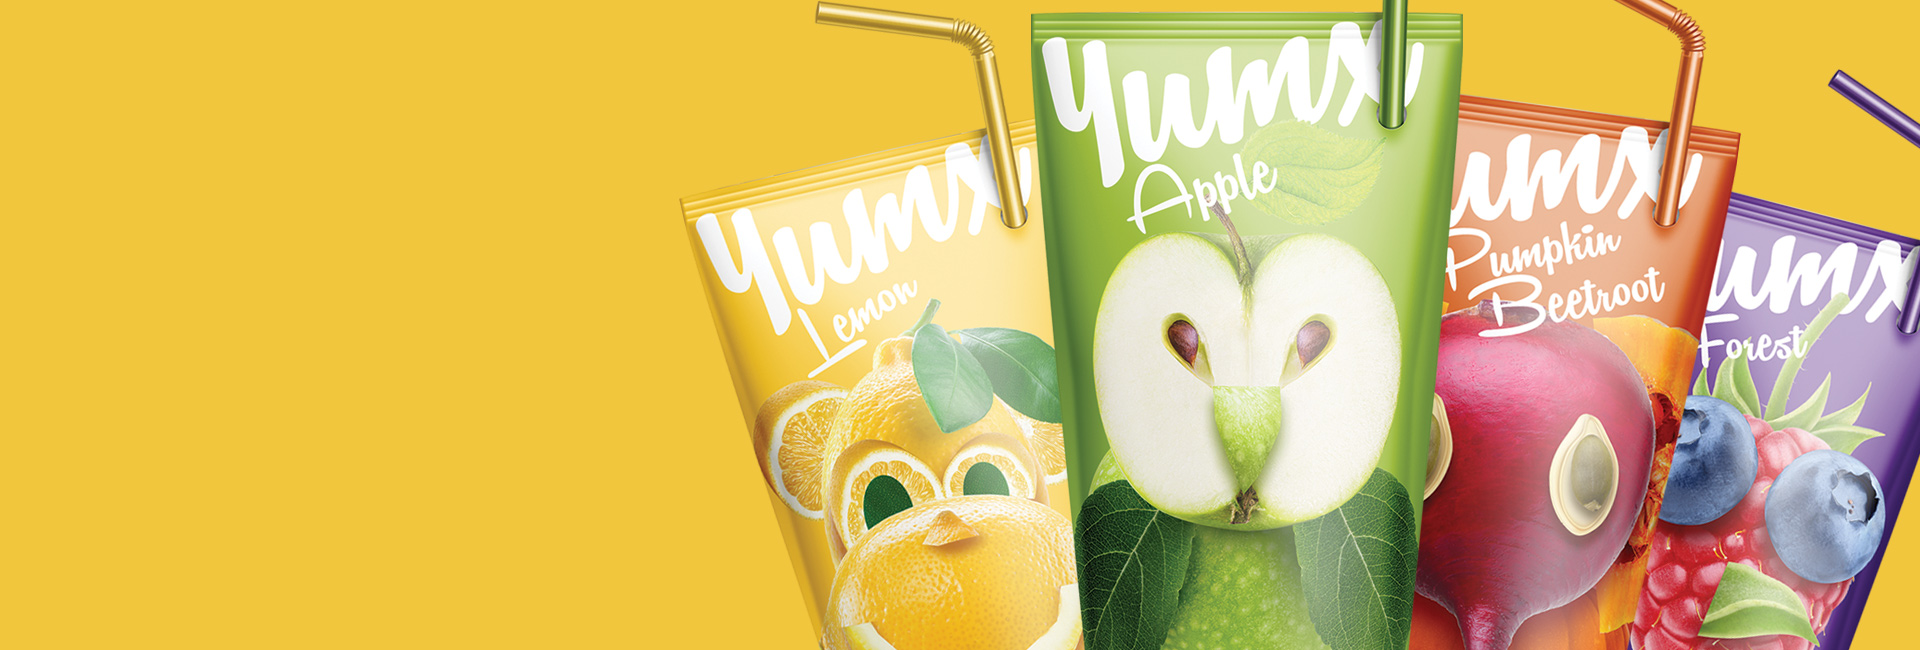 packaging Yumx animals MAISON D'IDÉE